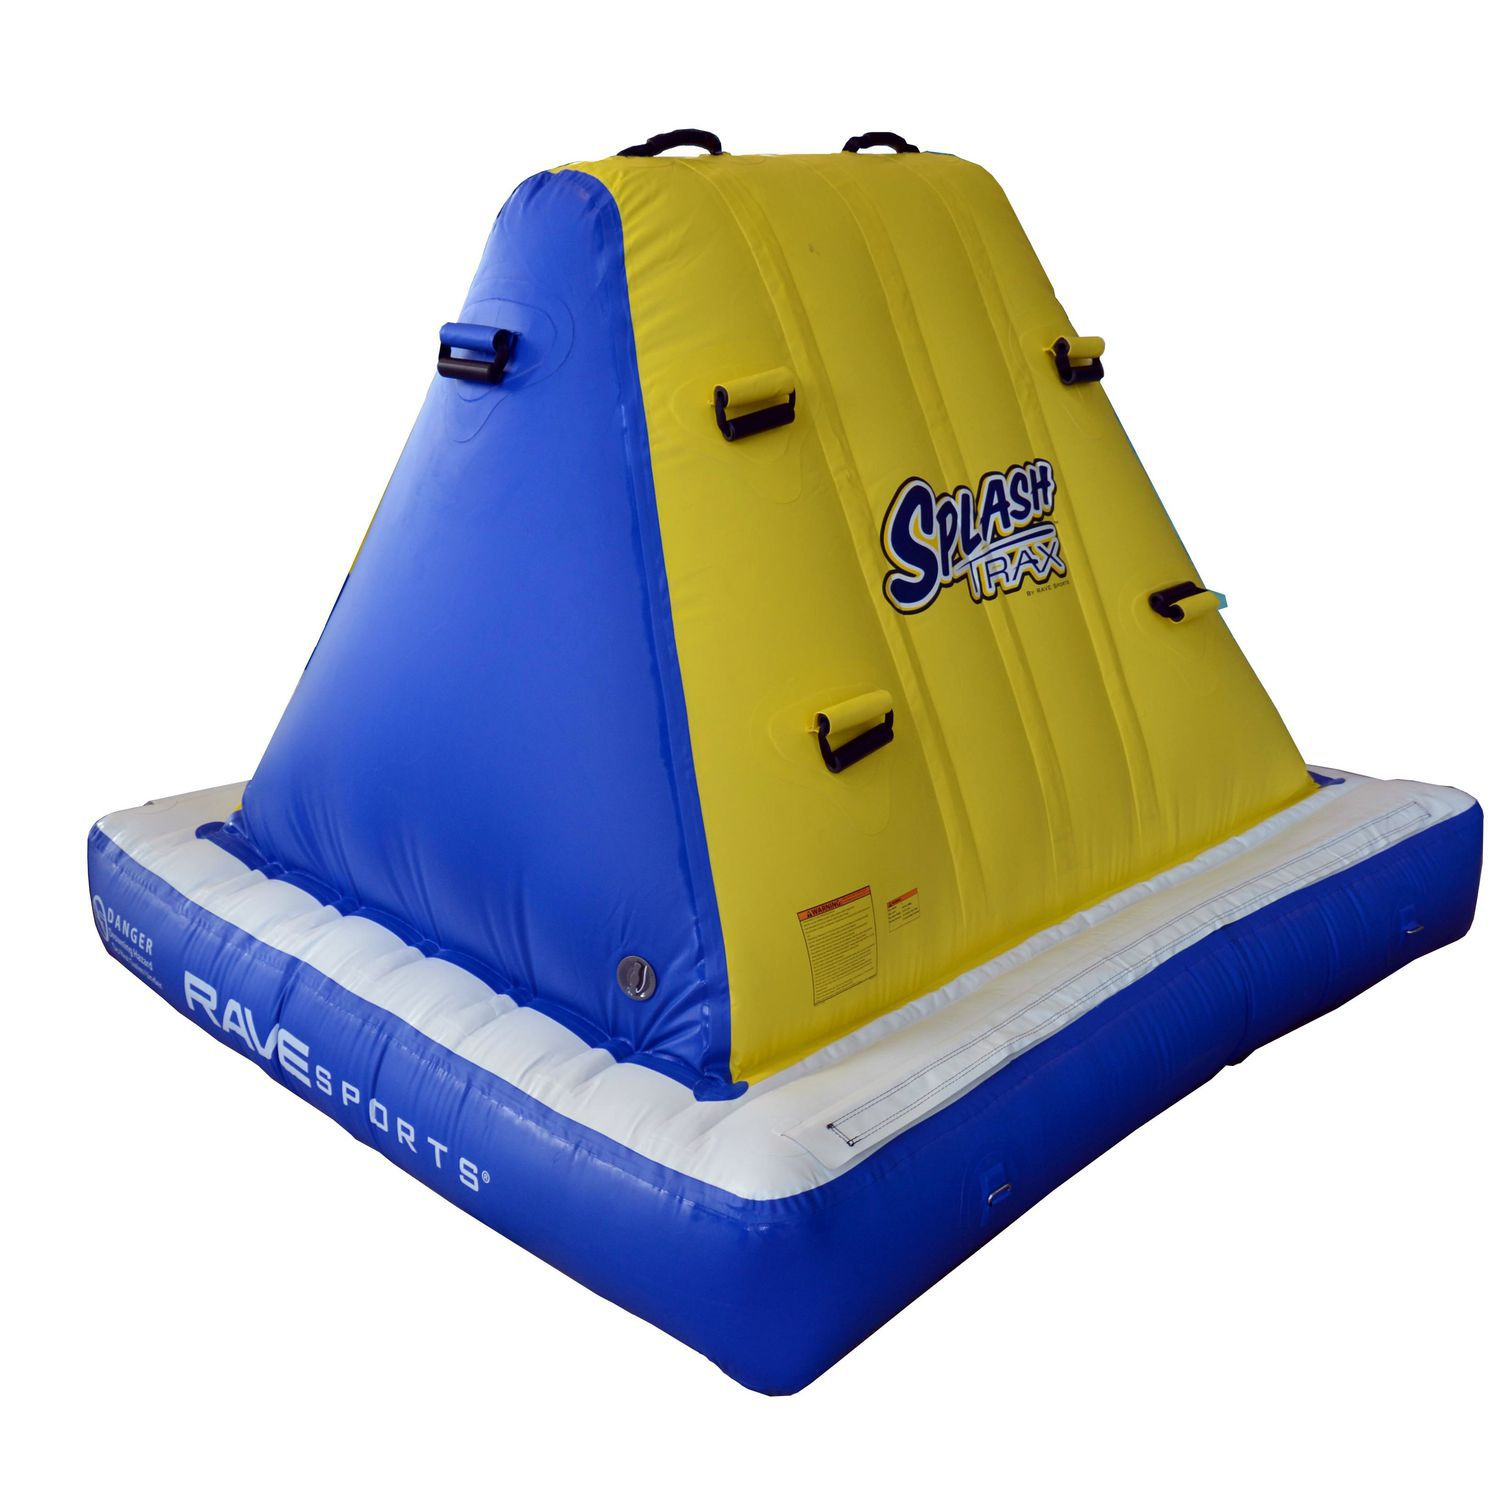 Pyramid water toy climbing wall inflatable Splash Trax